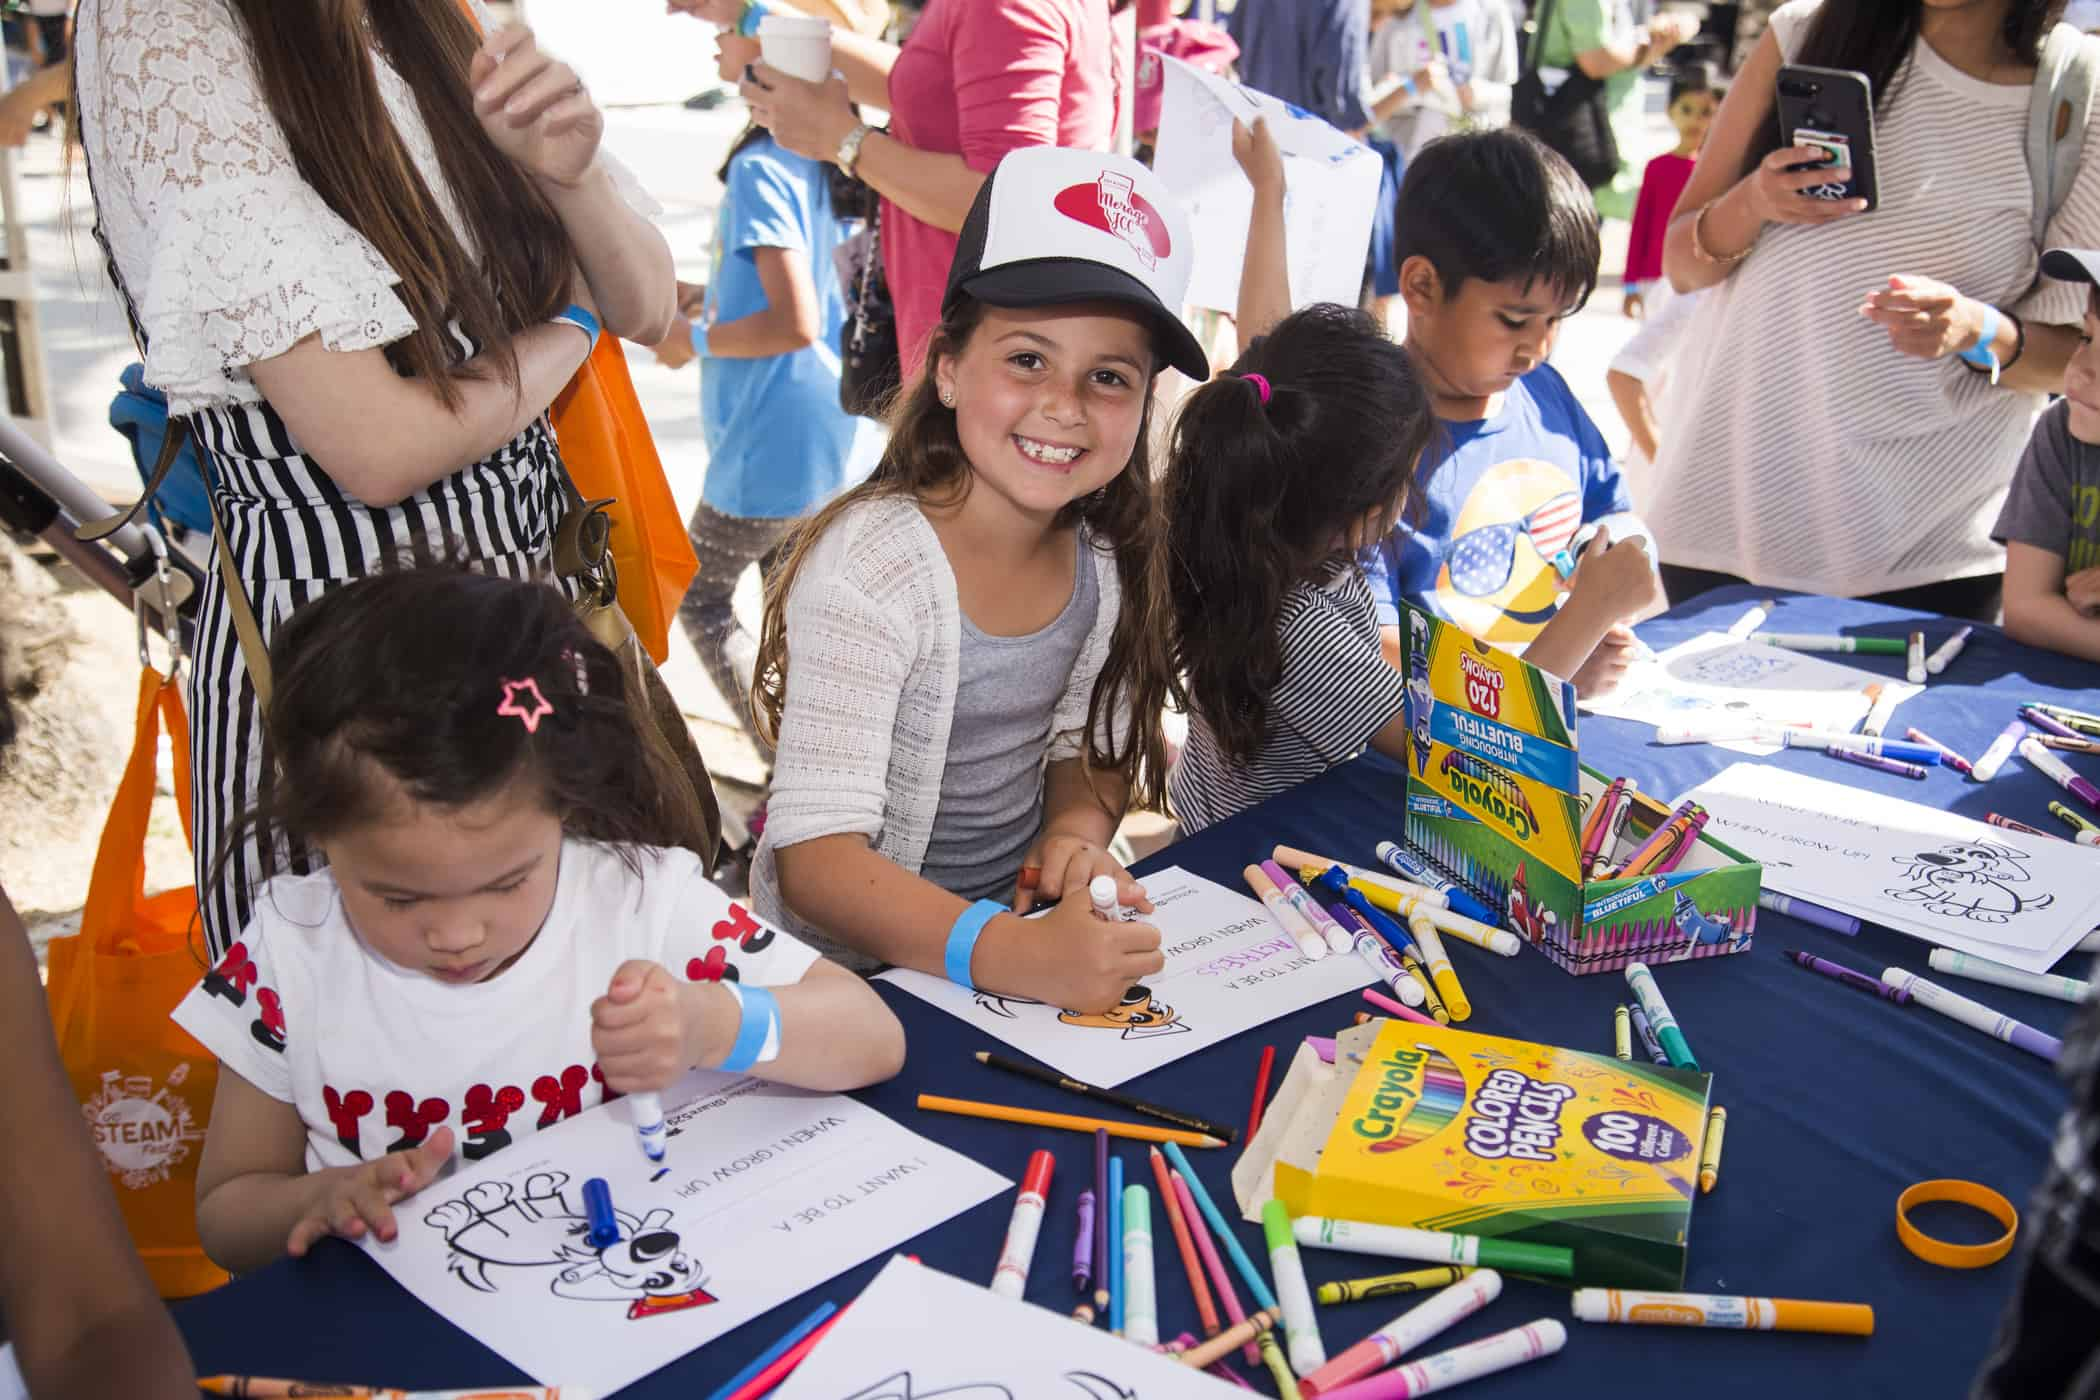 OVER 5,000 COMMUNITY MEMBERS CAME OUT TO EXPLORE, DISCOVER, AND PLAY AT OC STEAM FEST